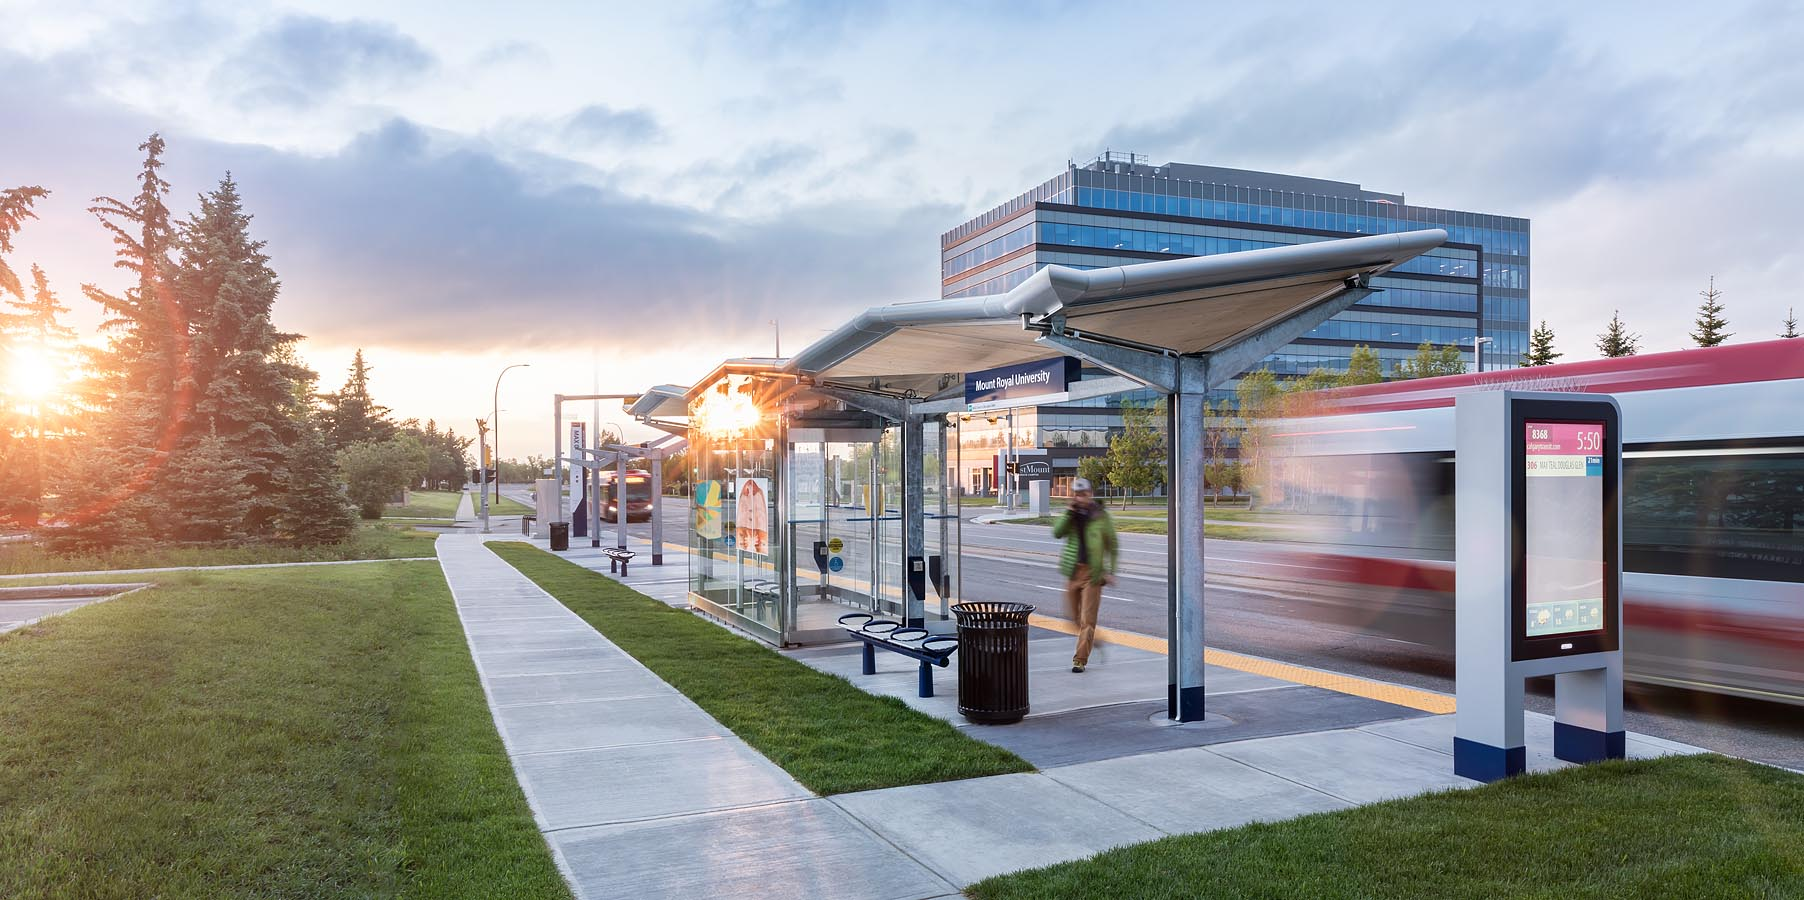 SOUTHEAST AND SOUTHWEST BUS RAPID TRANSIT -